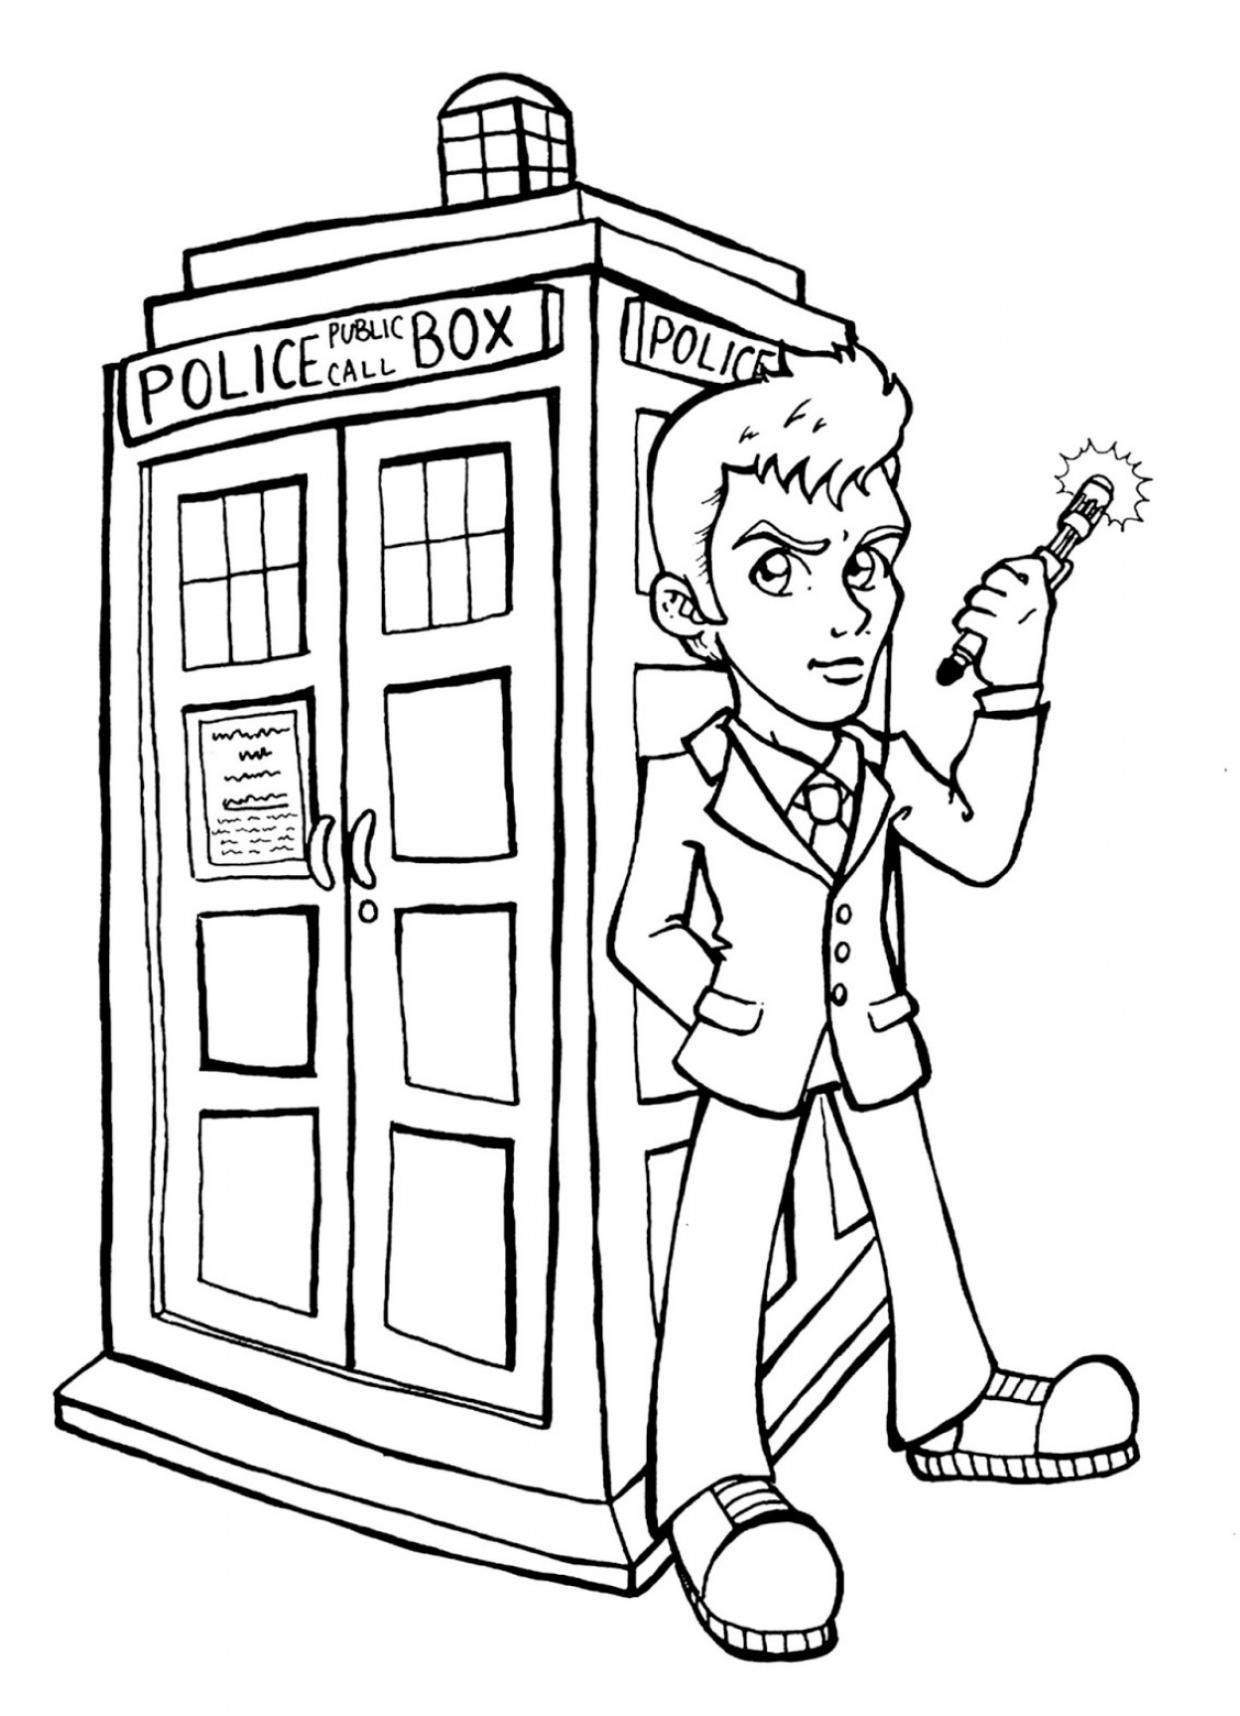 tardis colouring pages tardis coloring page ultra coloring pages pages tardis colouring